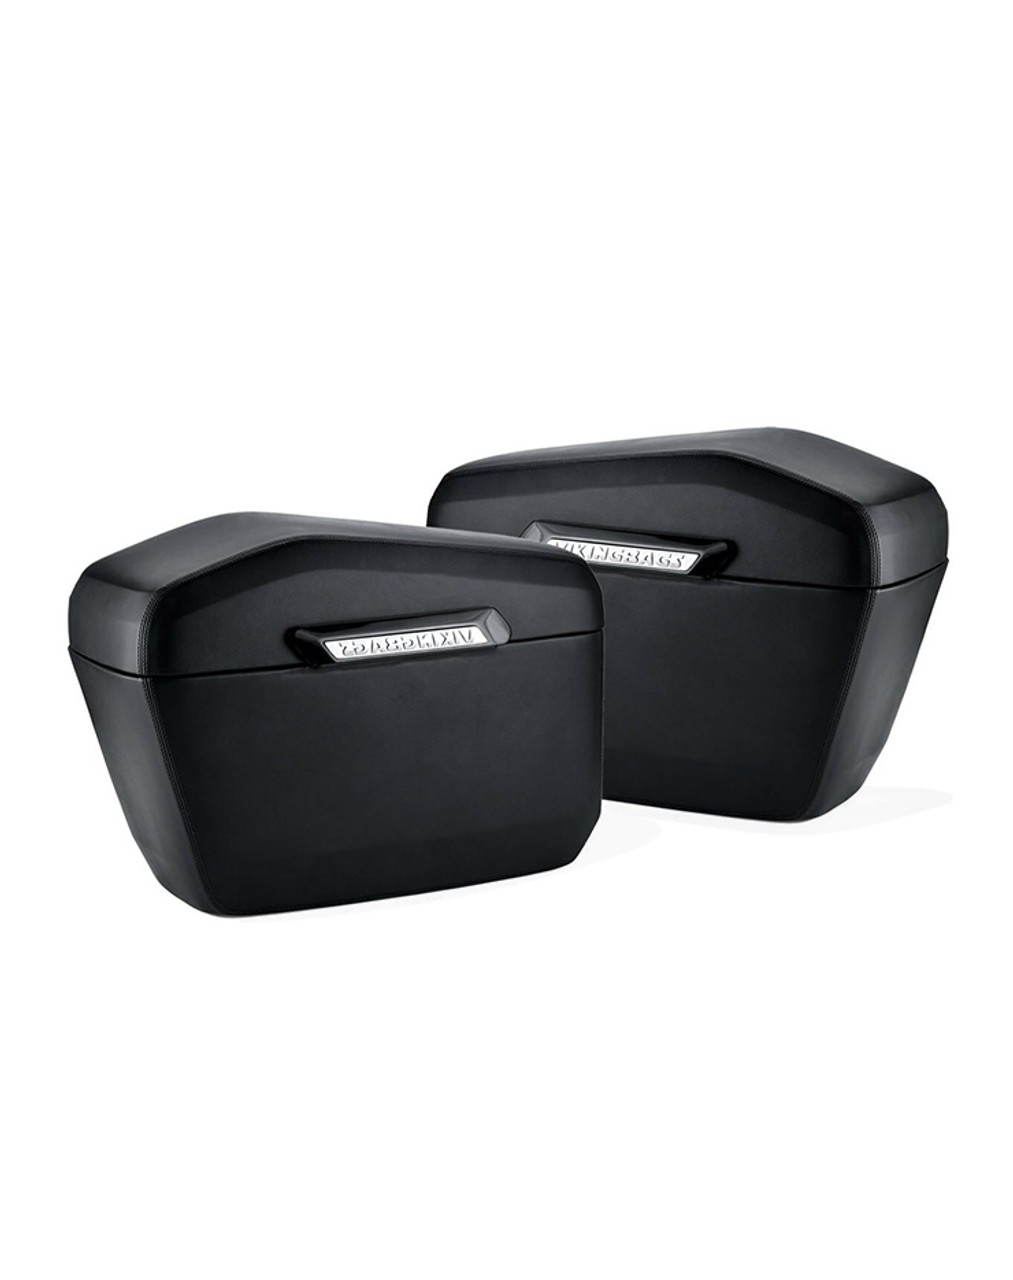 Viking Lamellar Large Leather Covered Hard Saddlebags For Harley Dyna Low Rider FXDL Both Bags View